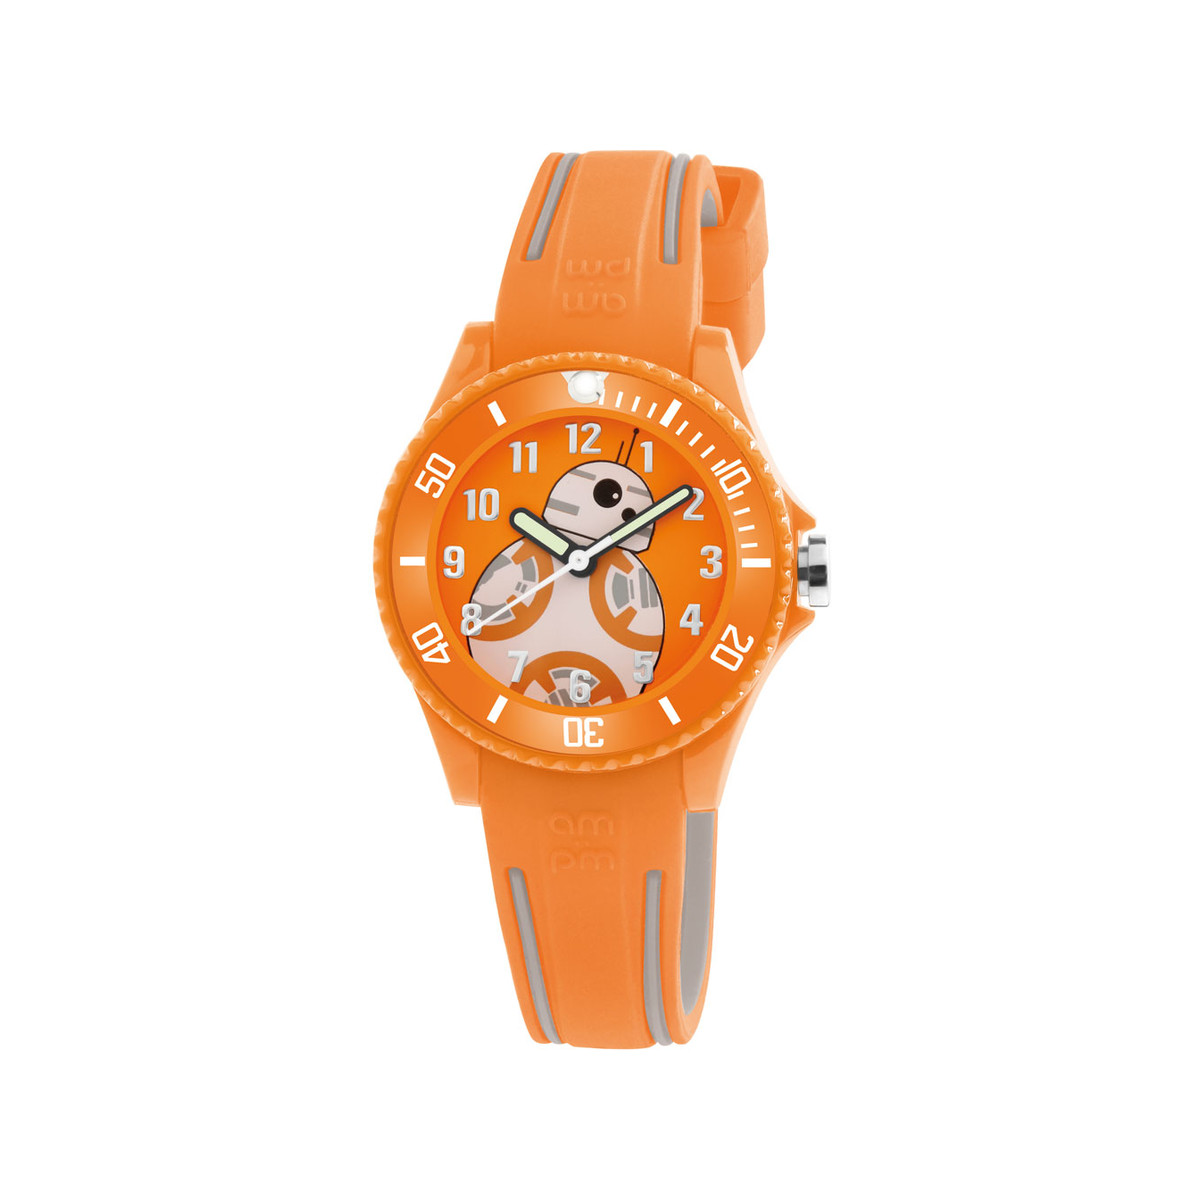 Montre AM:PM Star Wars enfant plastique orange - vue 1